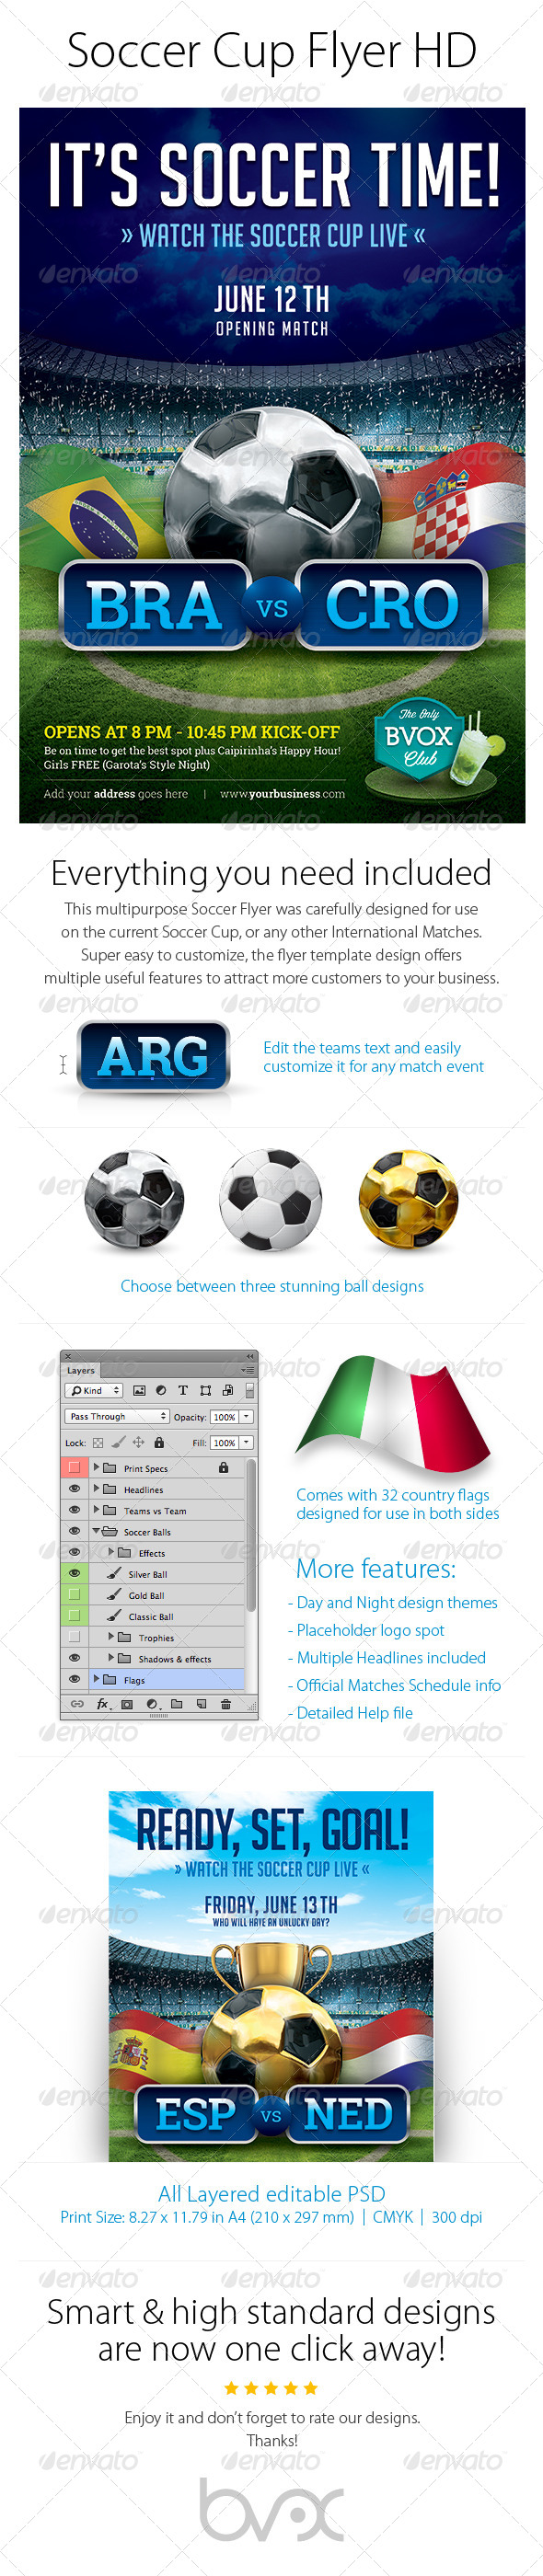 GraphicRiver Soccer Cup Flyer HD 7533540